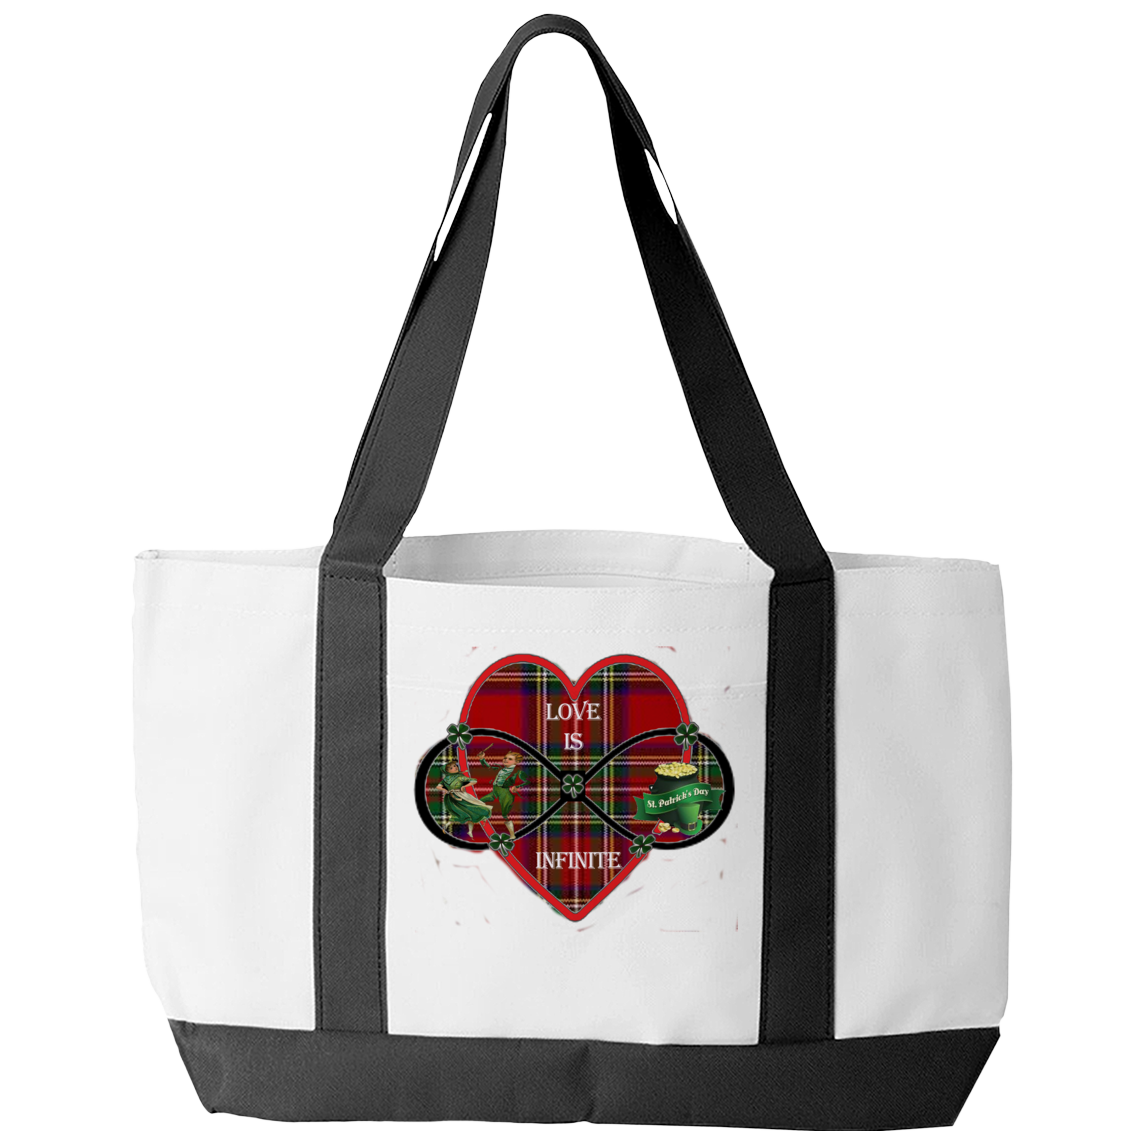 Love Is Infinite Tote Bag